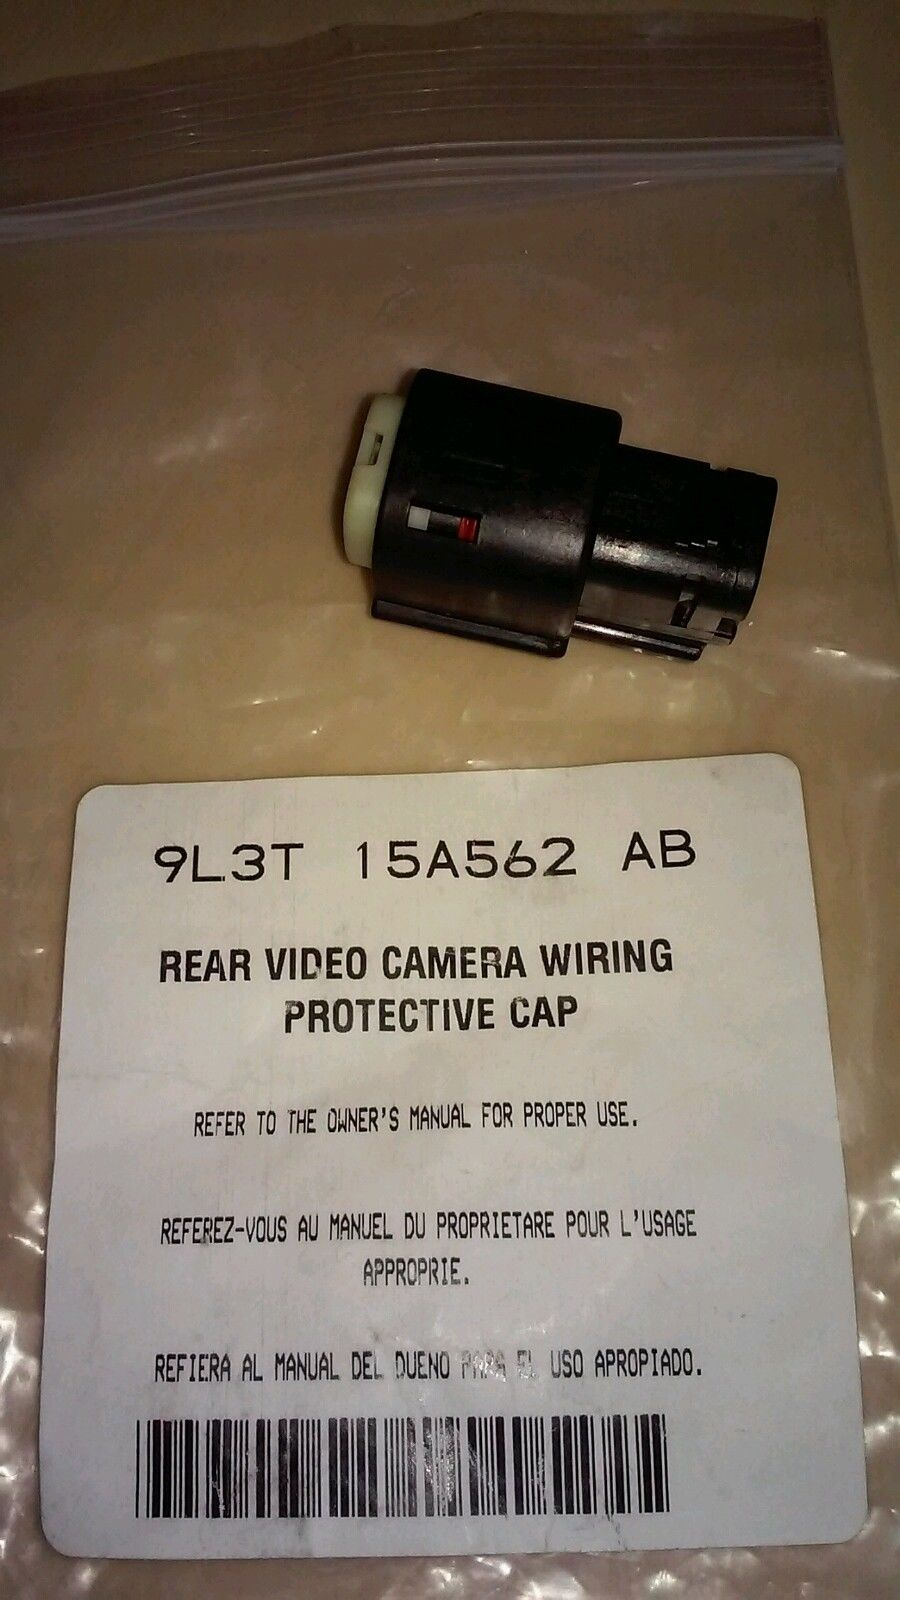 Rear View Camera Wiring Protective Cap Diy Enthusiasts Diagram Video Archives Repair Parts Store Rh Hobbystoreandmore Com System 2008 F 350 Mirror